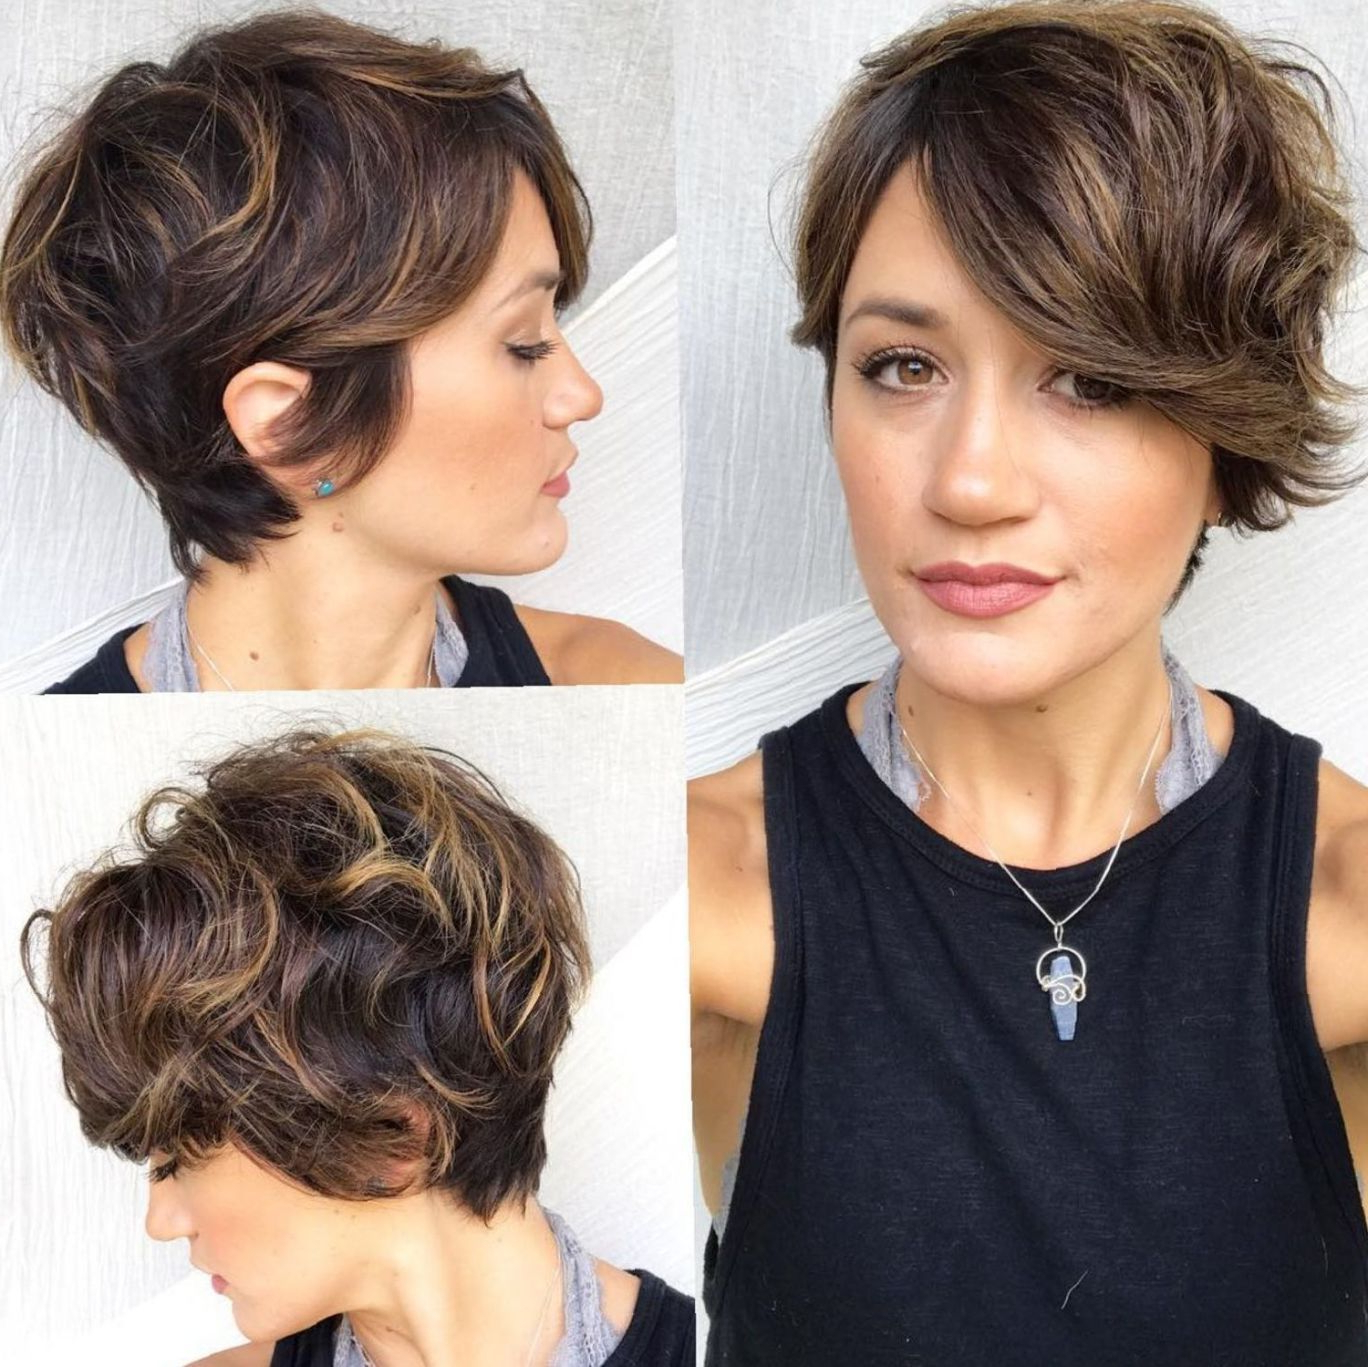 60 Short Shag Hairstyles That You Simply Can't Miss | Short Inside Short Shag Haircuts With Sass (View 5 of 20)